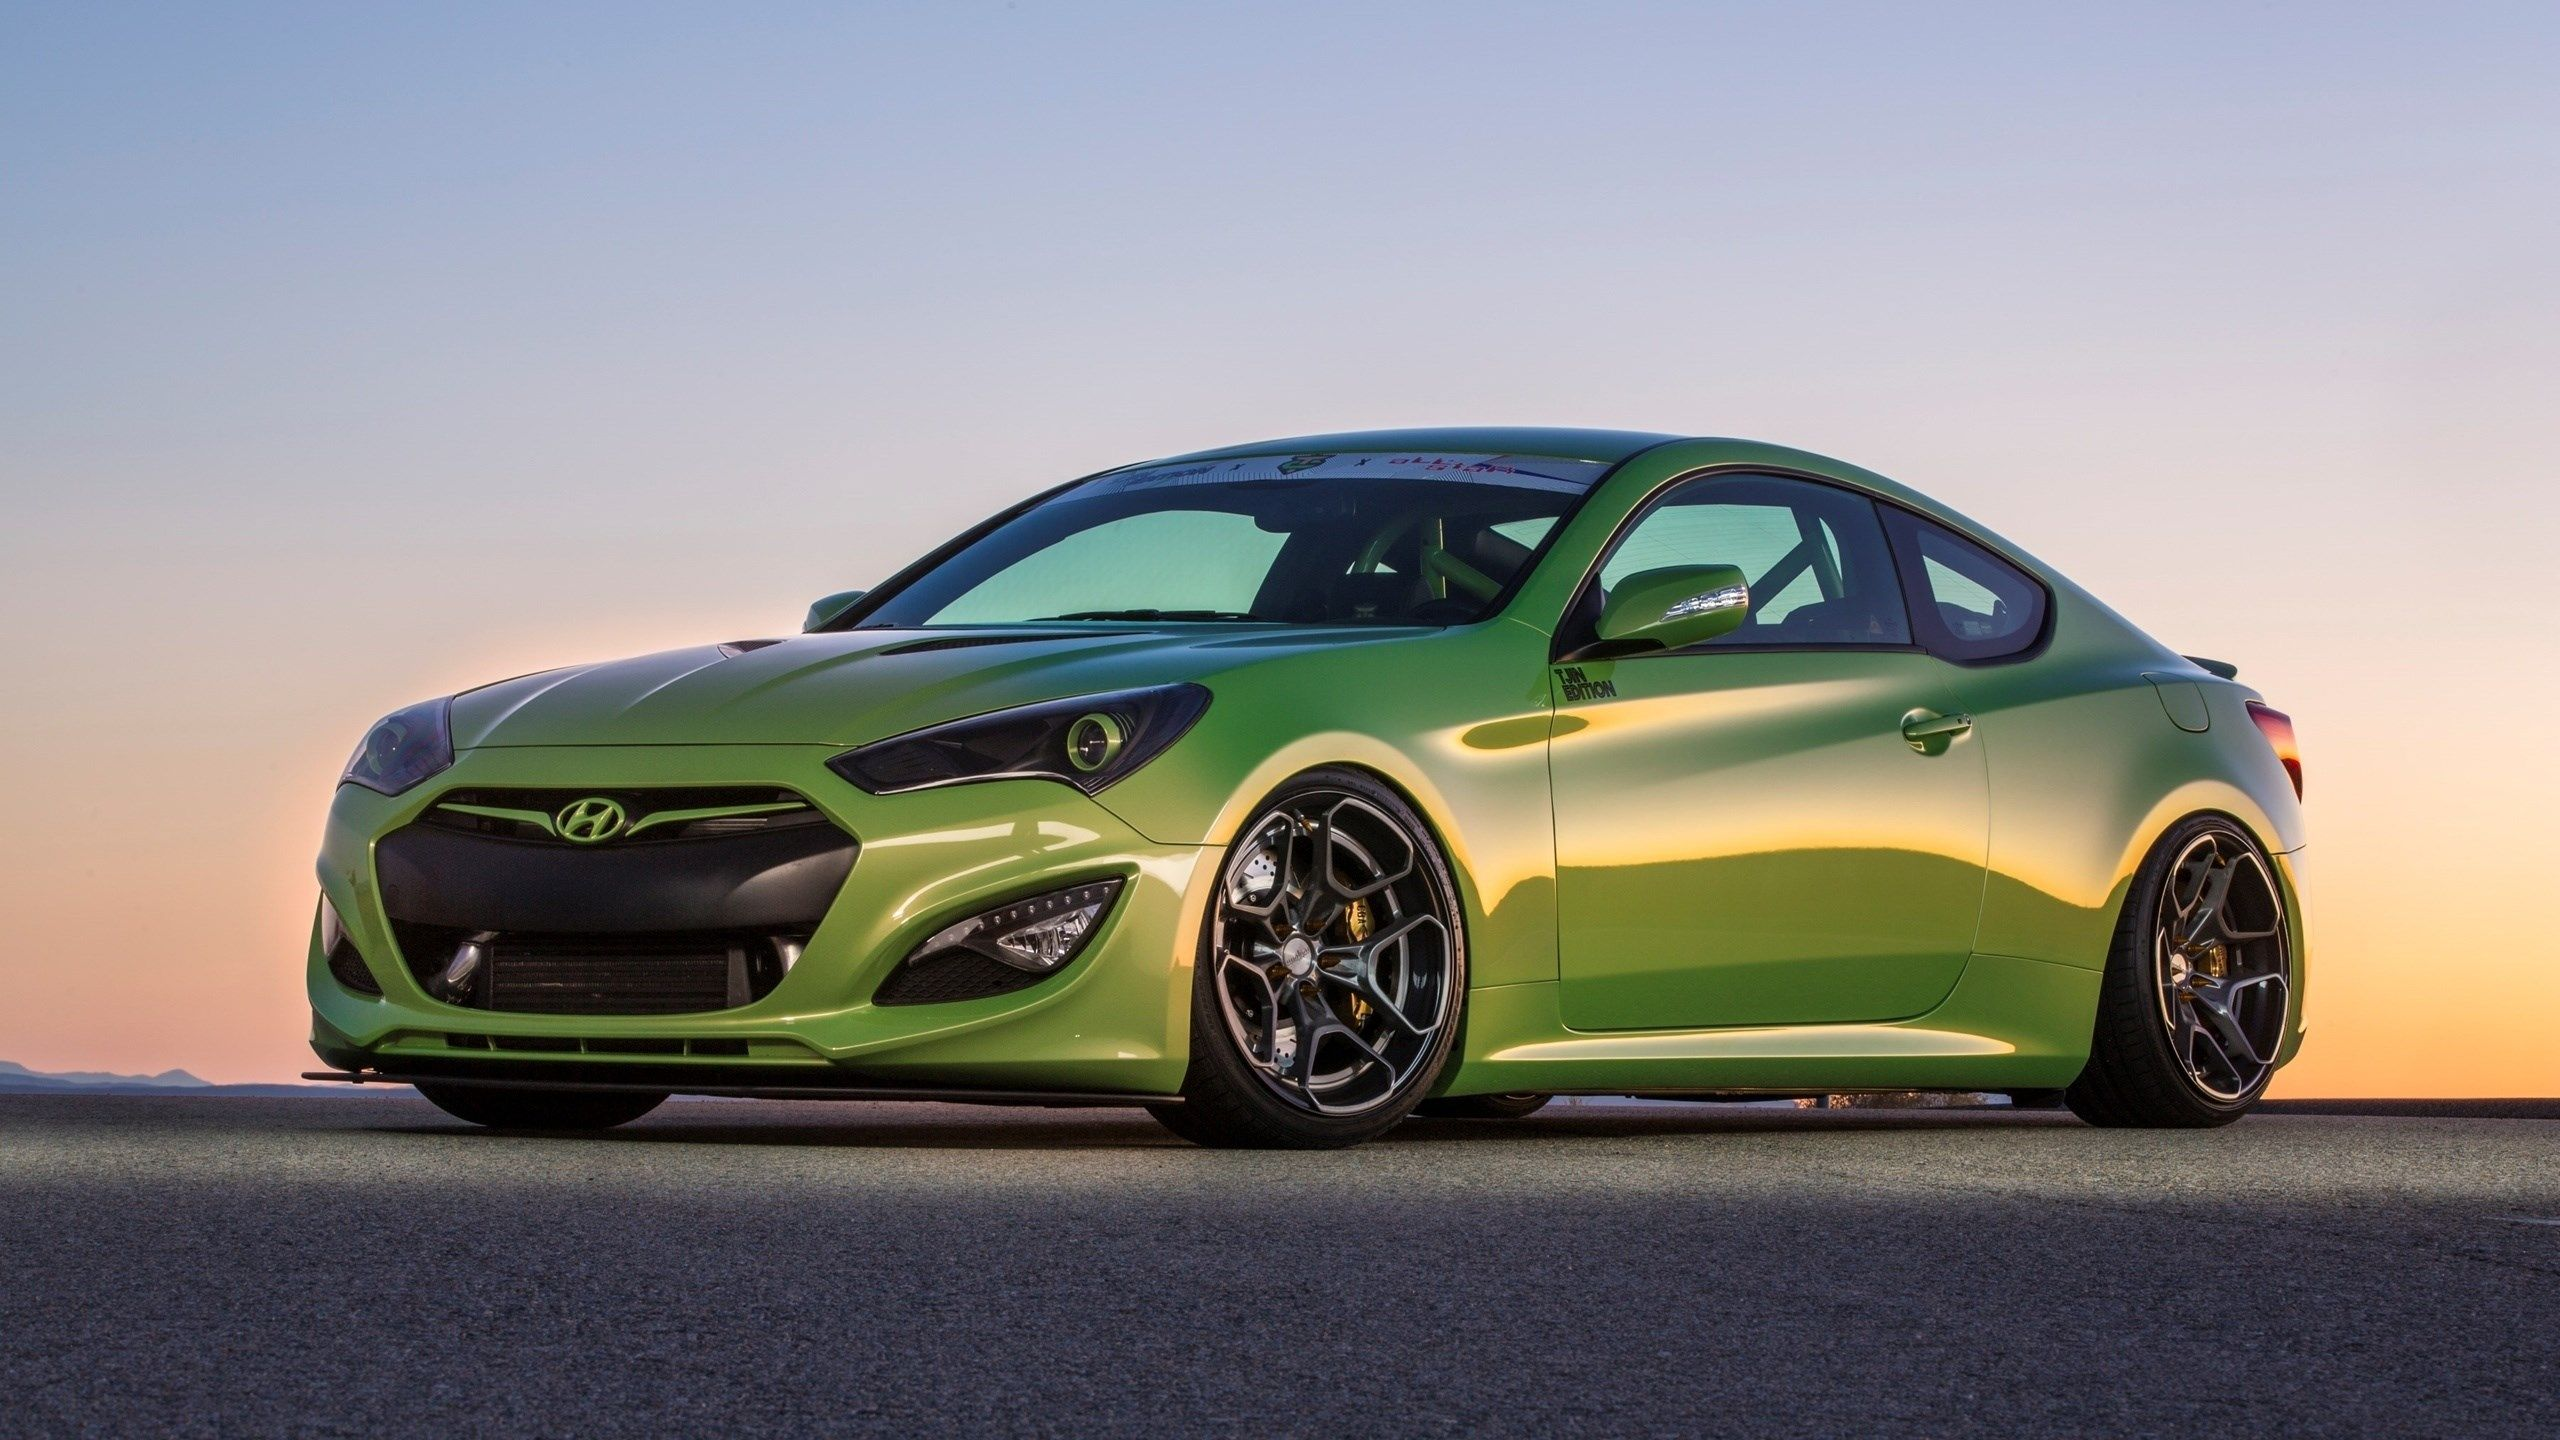 2560x1440 px free high resolution wallpaper hyundai genesis coupe by edgardo little for twd